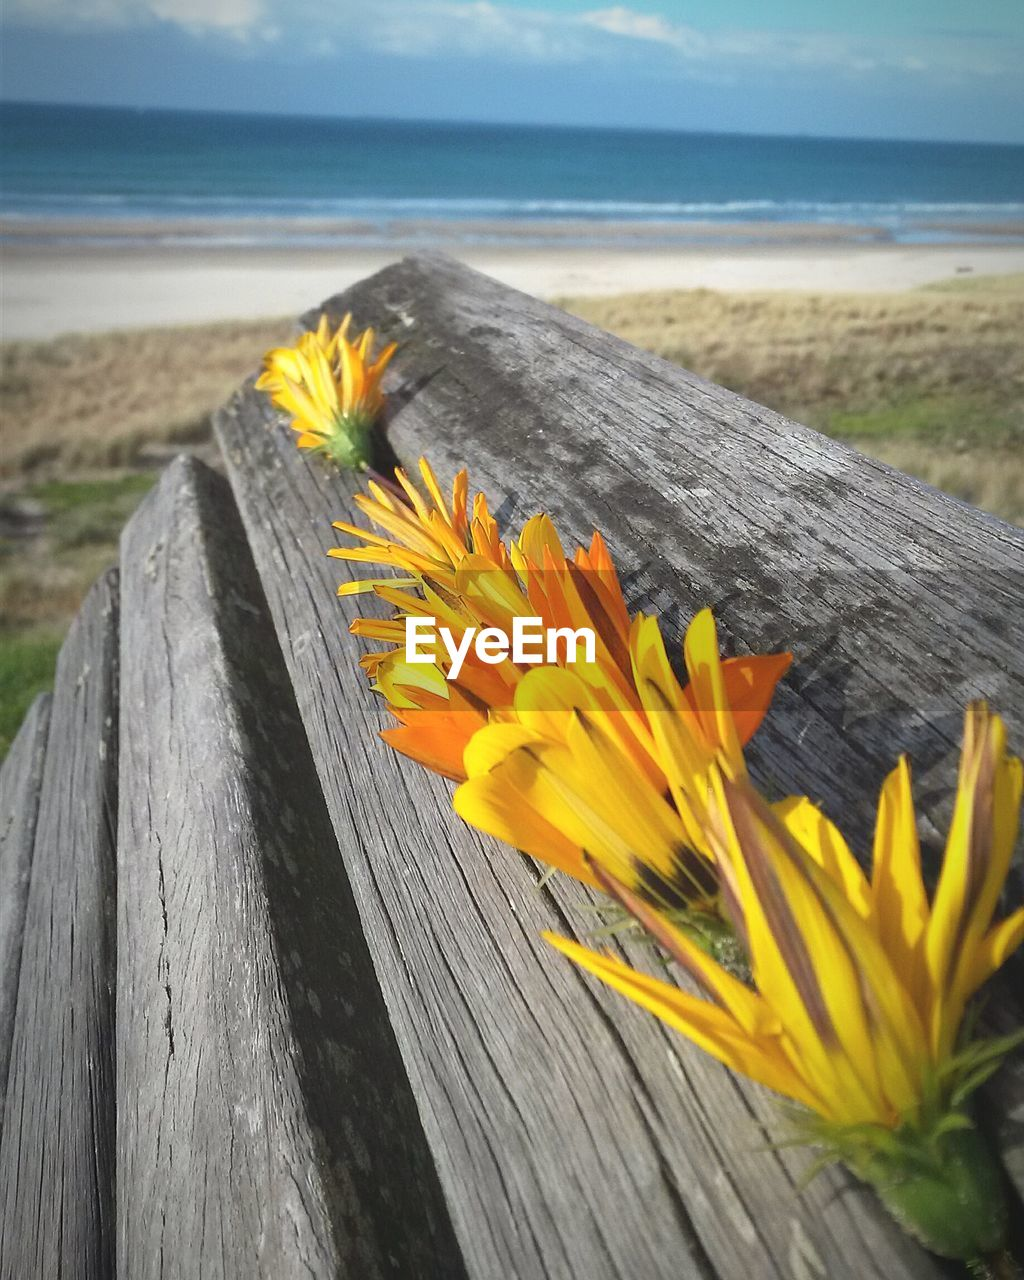 flower, yellow, nature, beauty in nature, wood - material, water, sea, outdoors, no people, day, tranquility, horizon over water, beach, fragility, scenics, close-up, freshness, sky, flower head